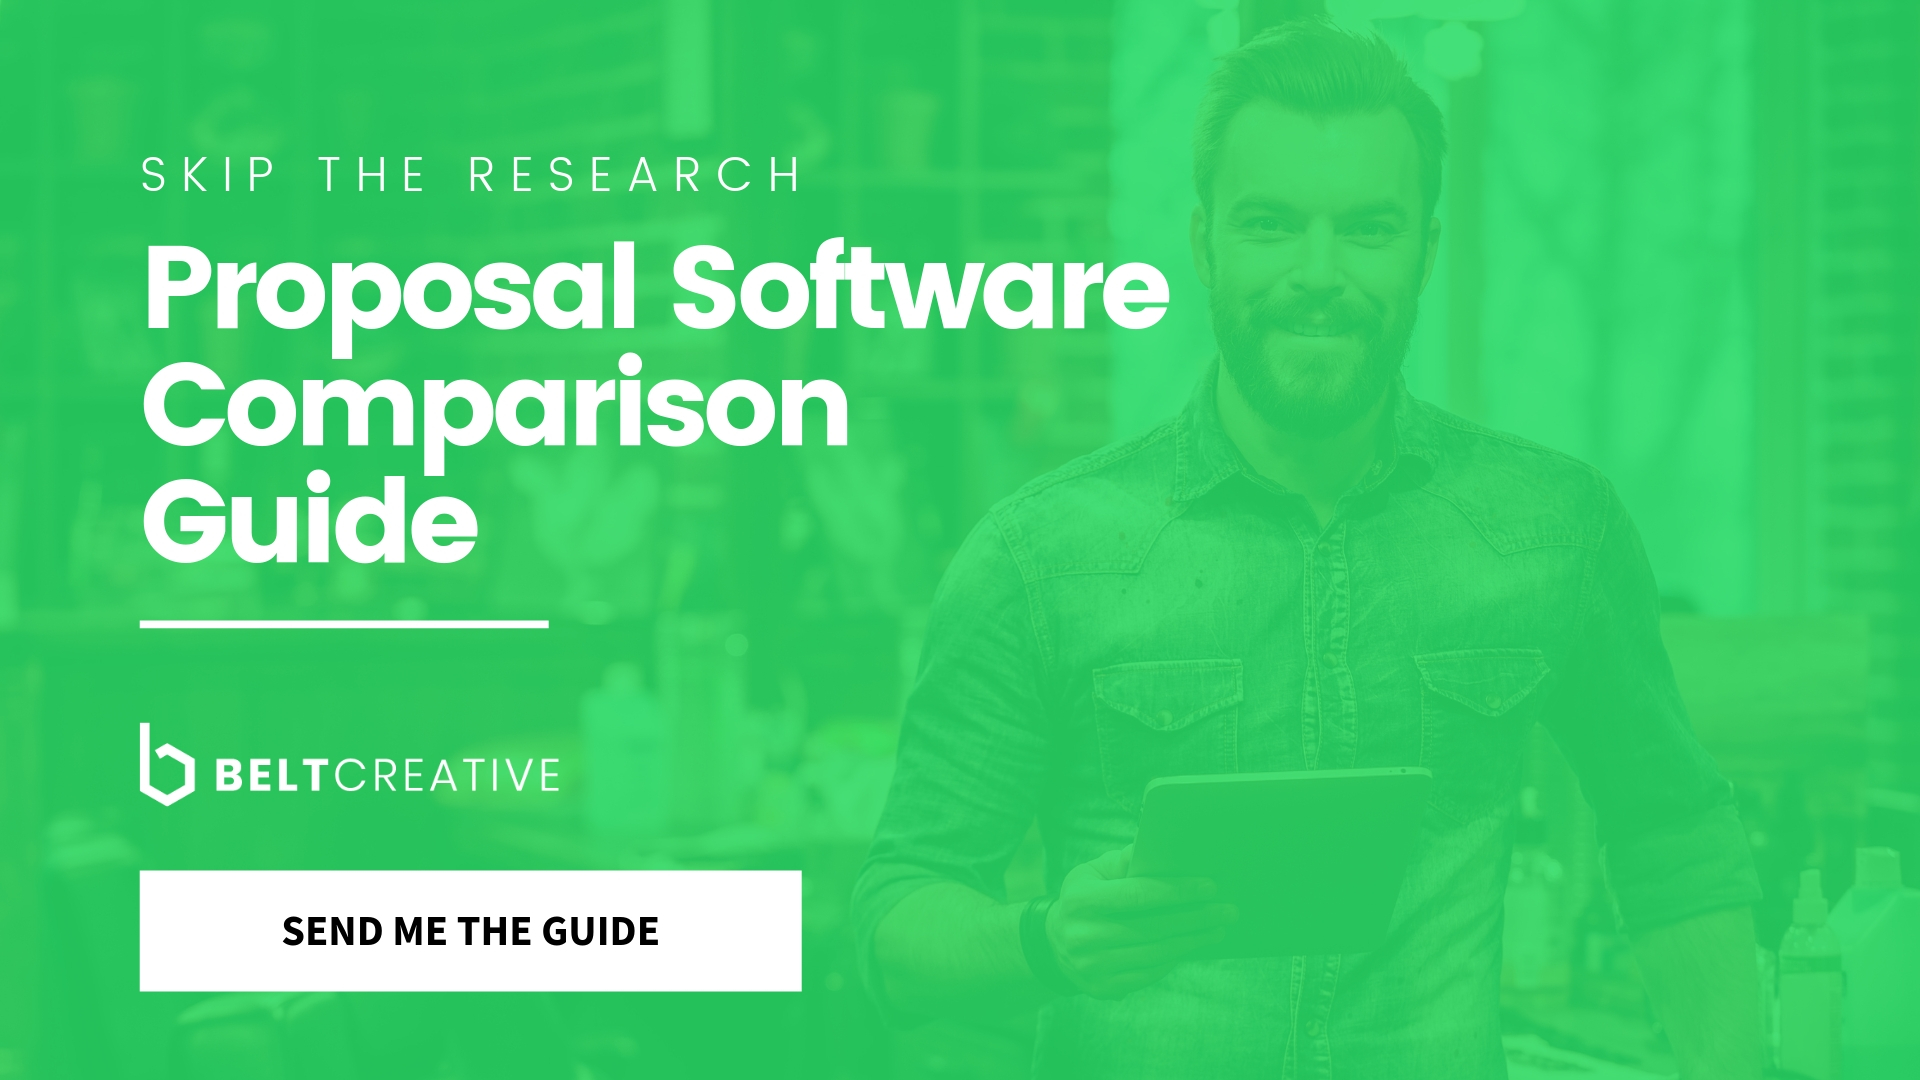 Proposal Software Comparison Guide Opt-In